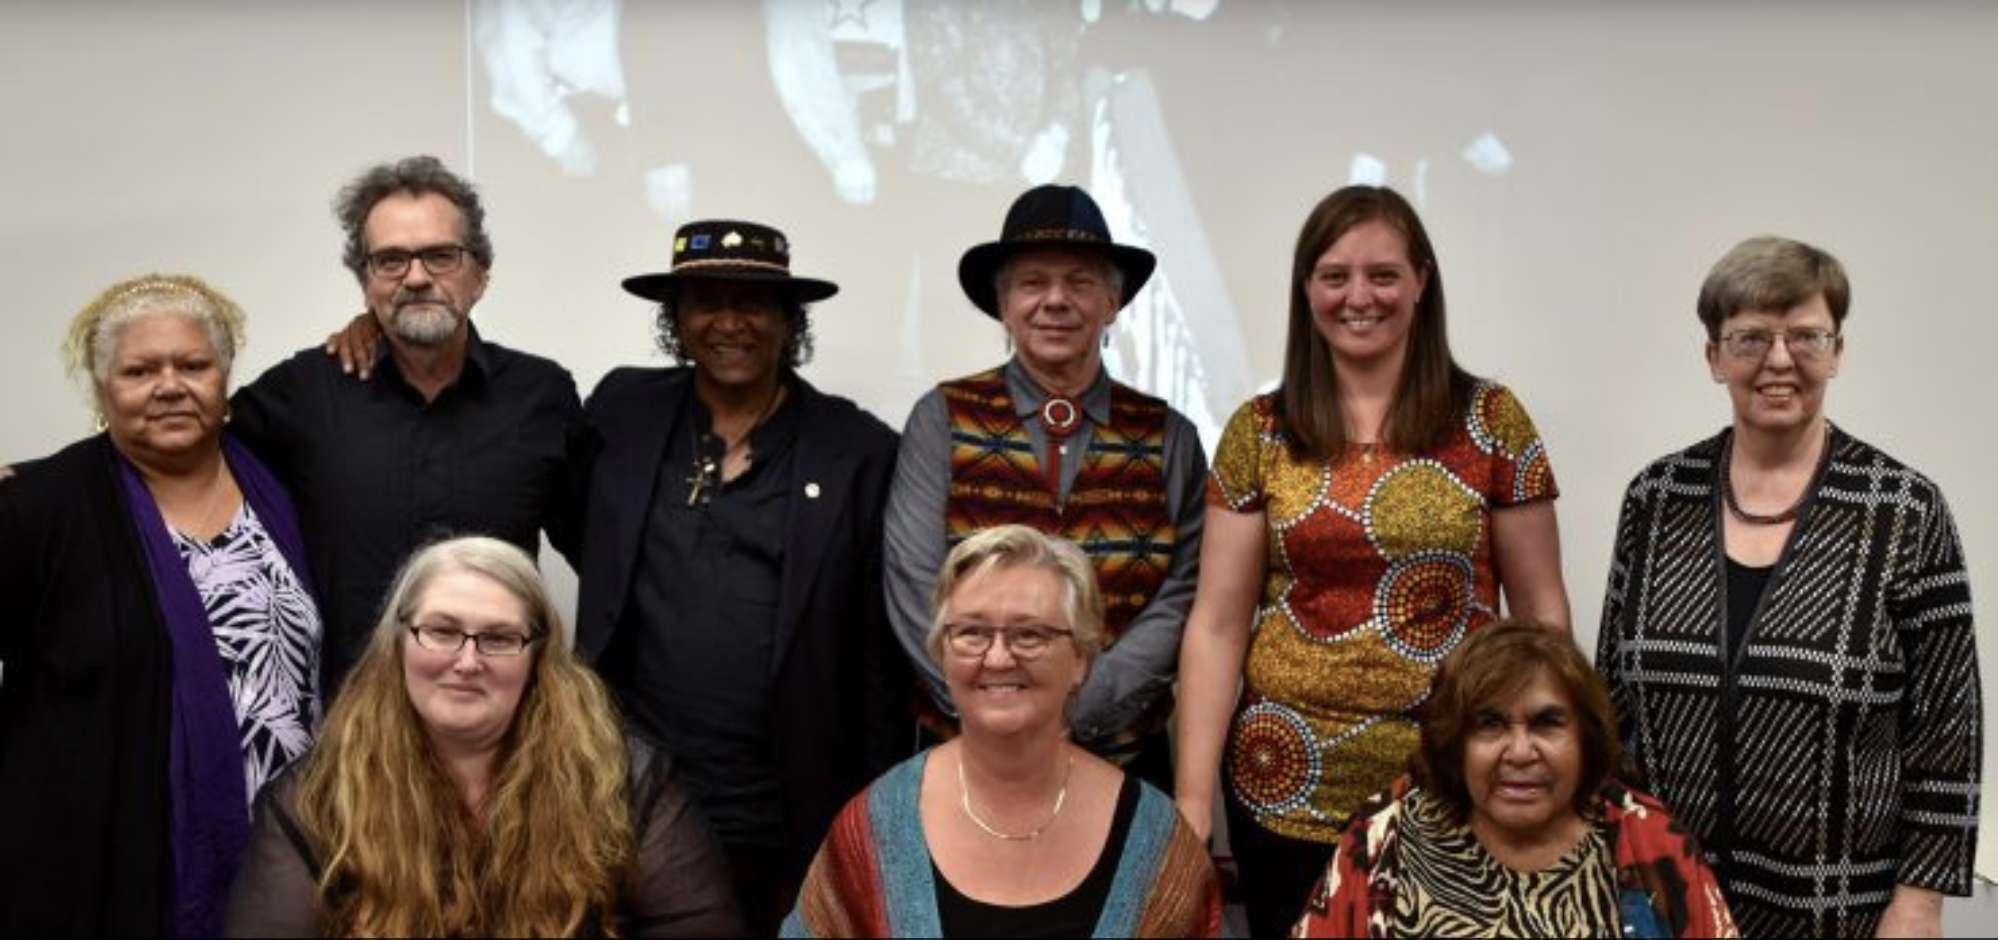 Breakthrough on teaching theology through Indigenous eyes      Eternity News   9 April, 2019  An agreement is signed between NAIITS: An Indigenous Learning Community, Whitley College and the University of Divinity. Brooke Prentis, 2019 ADM Senior Fellow, is a founding NAIITS board member.